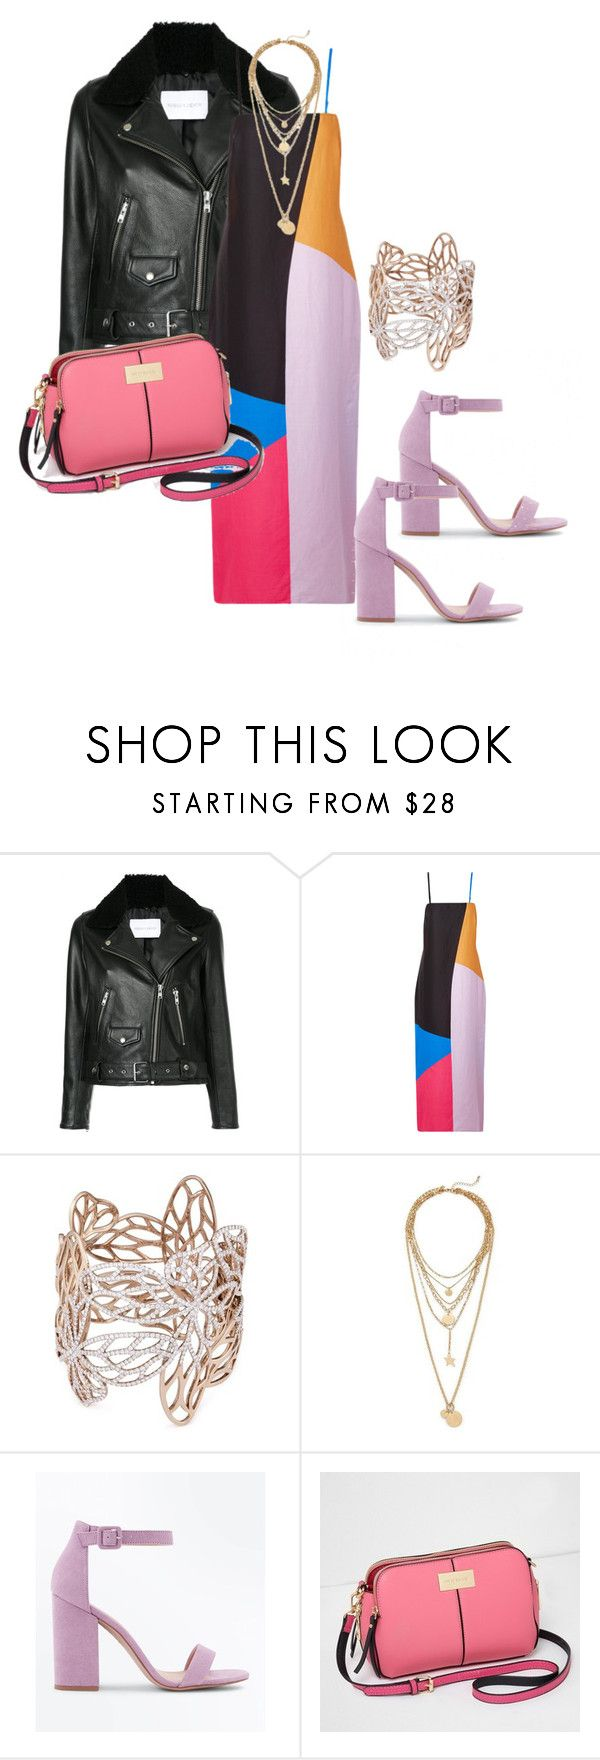 """""""Untitled #4130"""" by emma-oloughlin ❤ liked on Polyvore featuring Nobody Denim, Mara Hoffman, Anyallerie, Rebecca Minkoff, New Look and River Island"""